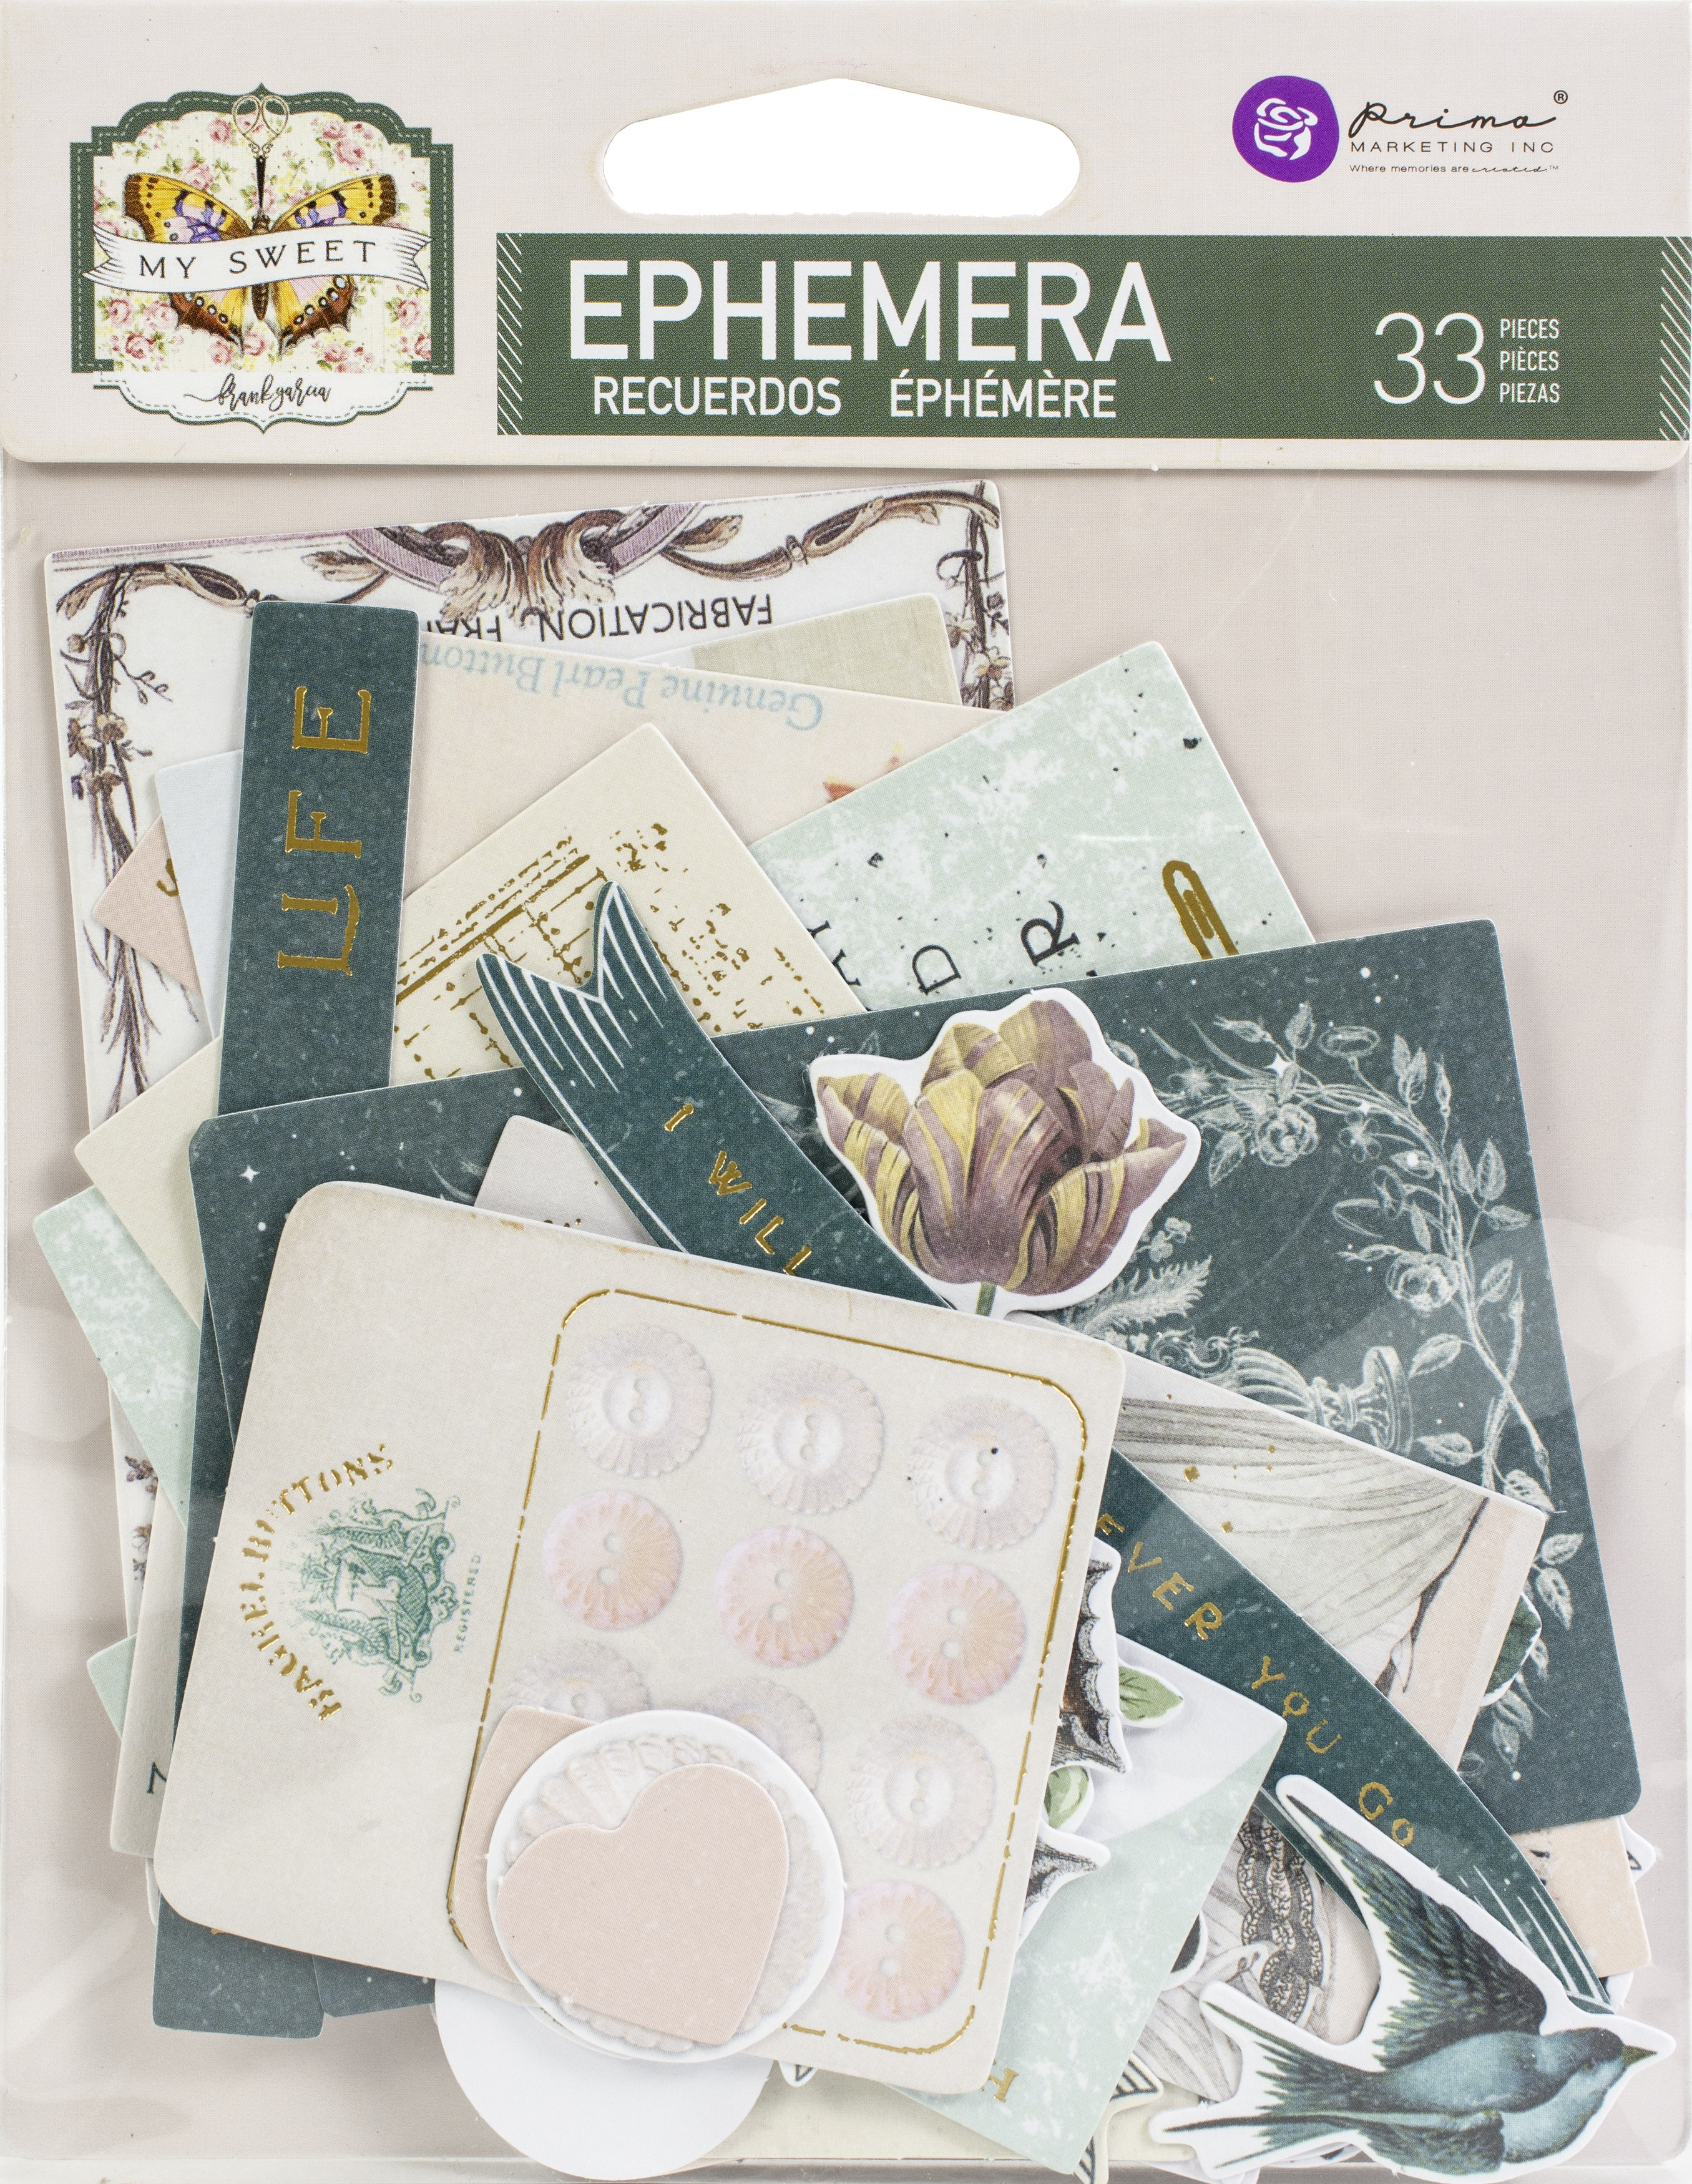 My Sweet By Frank Garcia Cardstock Ephemera 33/Pkg-Shapes, Tags, Words, Foiled A...